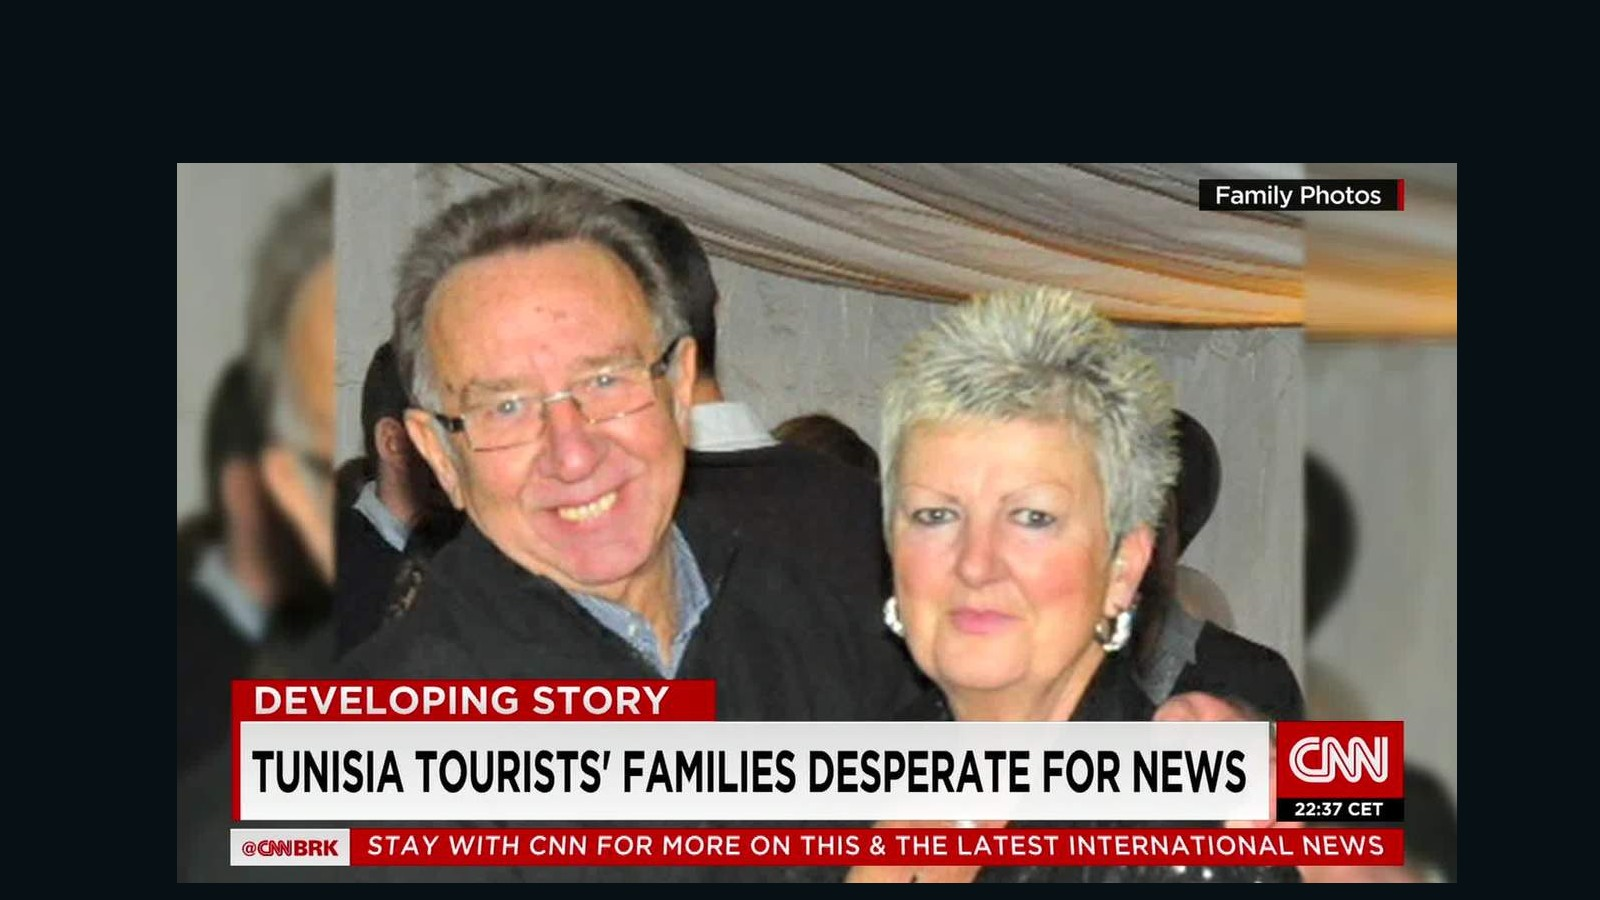 Tunisia tourists' family desperate for news - CNN Video - photo#43